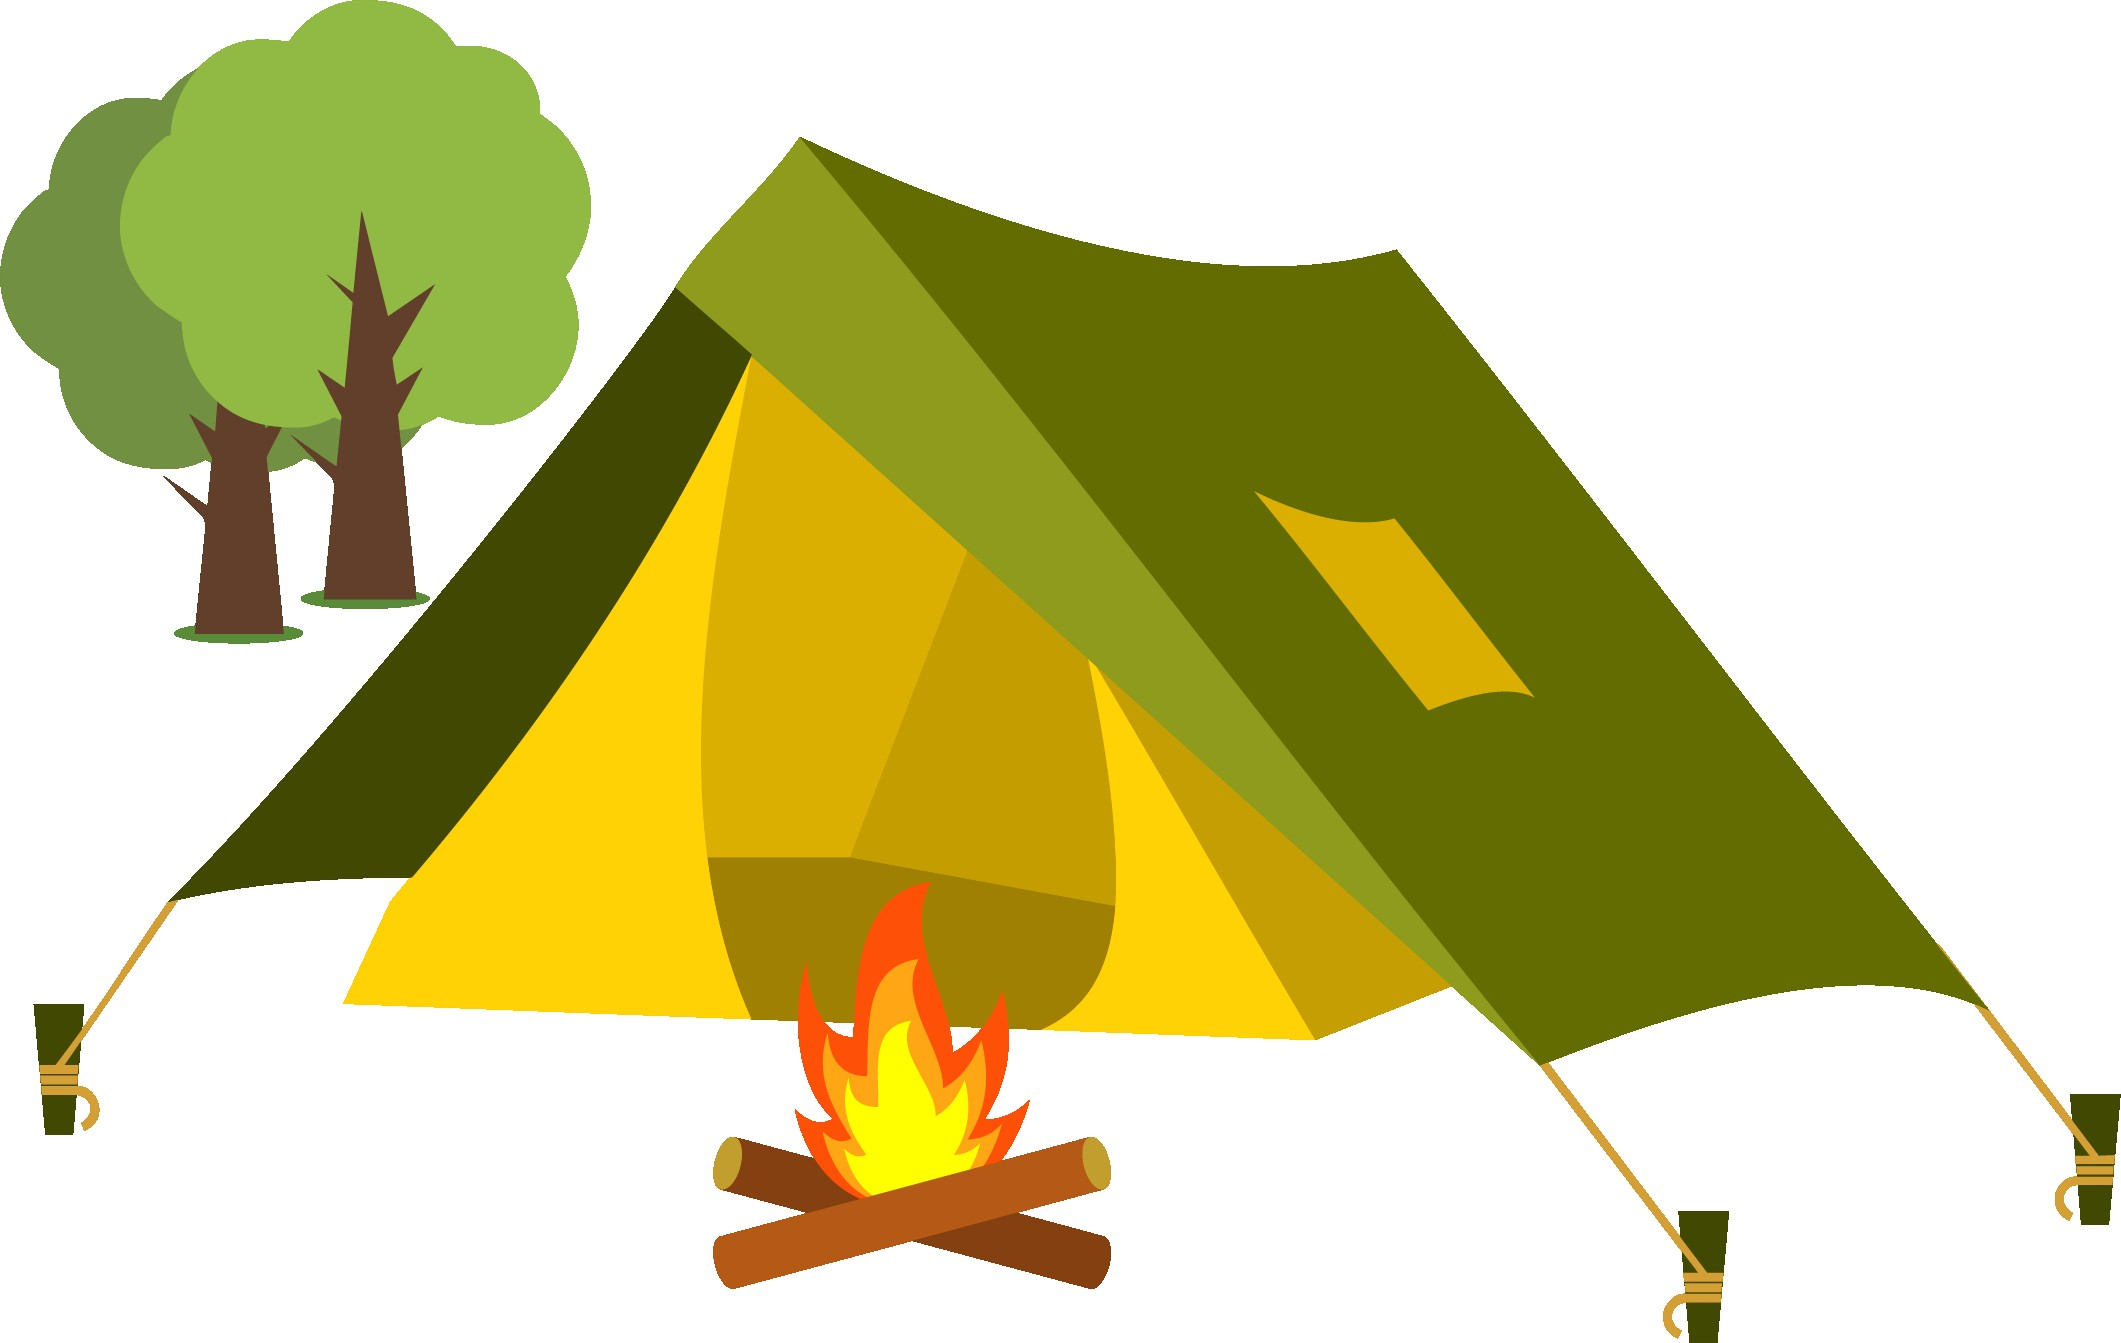 For download free images. Camping clipart